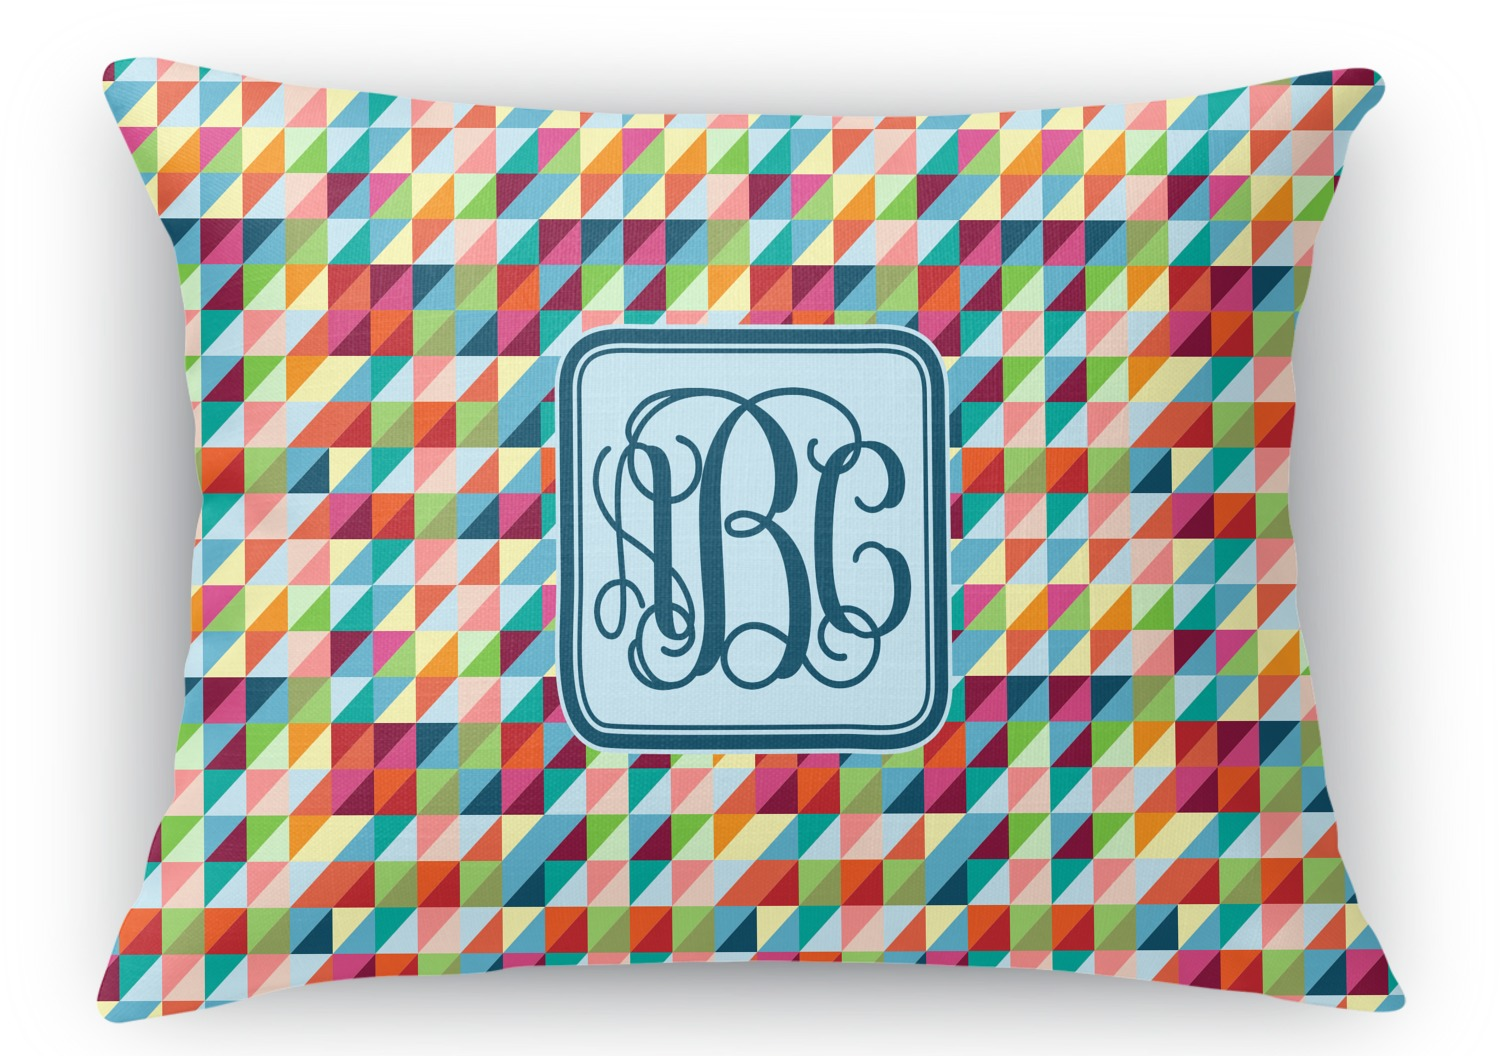 Vintage Looking Throw Pillows : Retro Triangles Rectangular Throw Pillow - 18